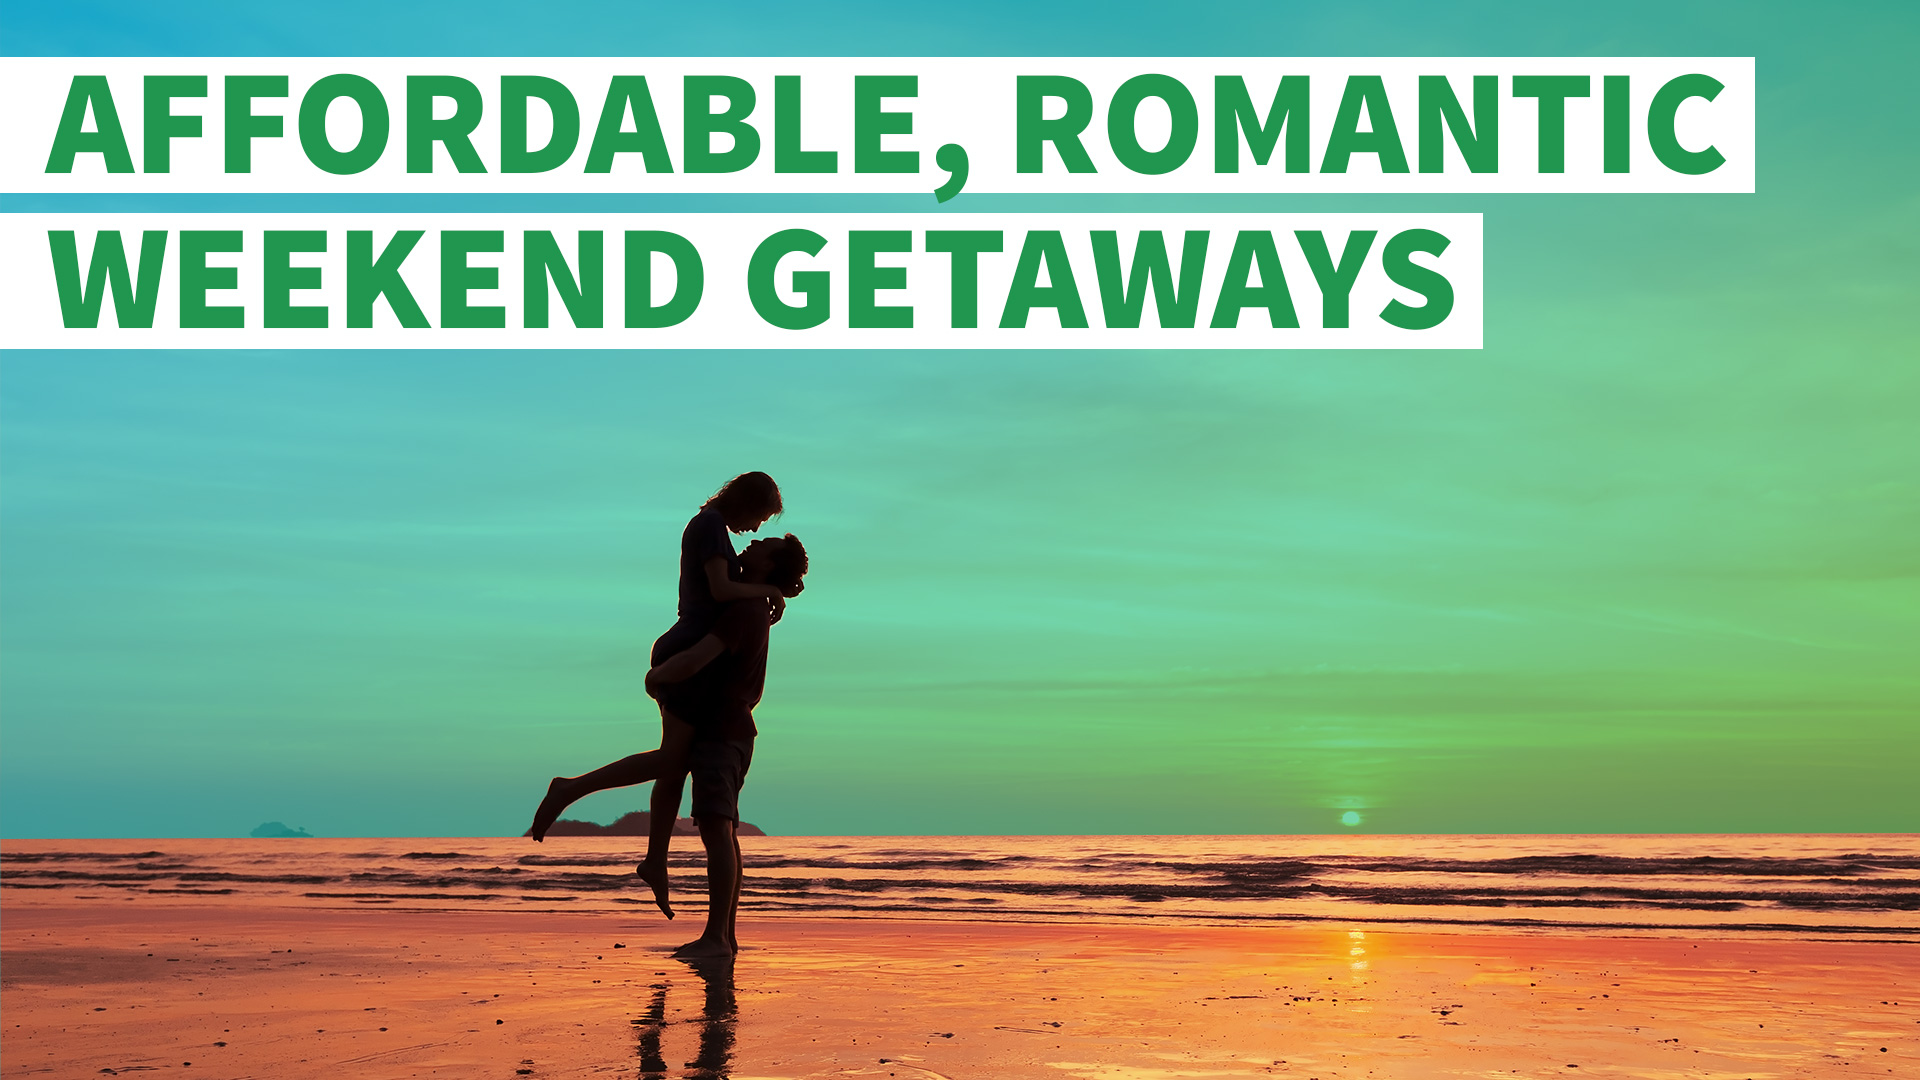 7 affordable romantic weekend getaways gobankingrates for Where to go for a romantic weekend